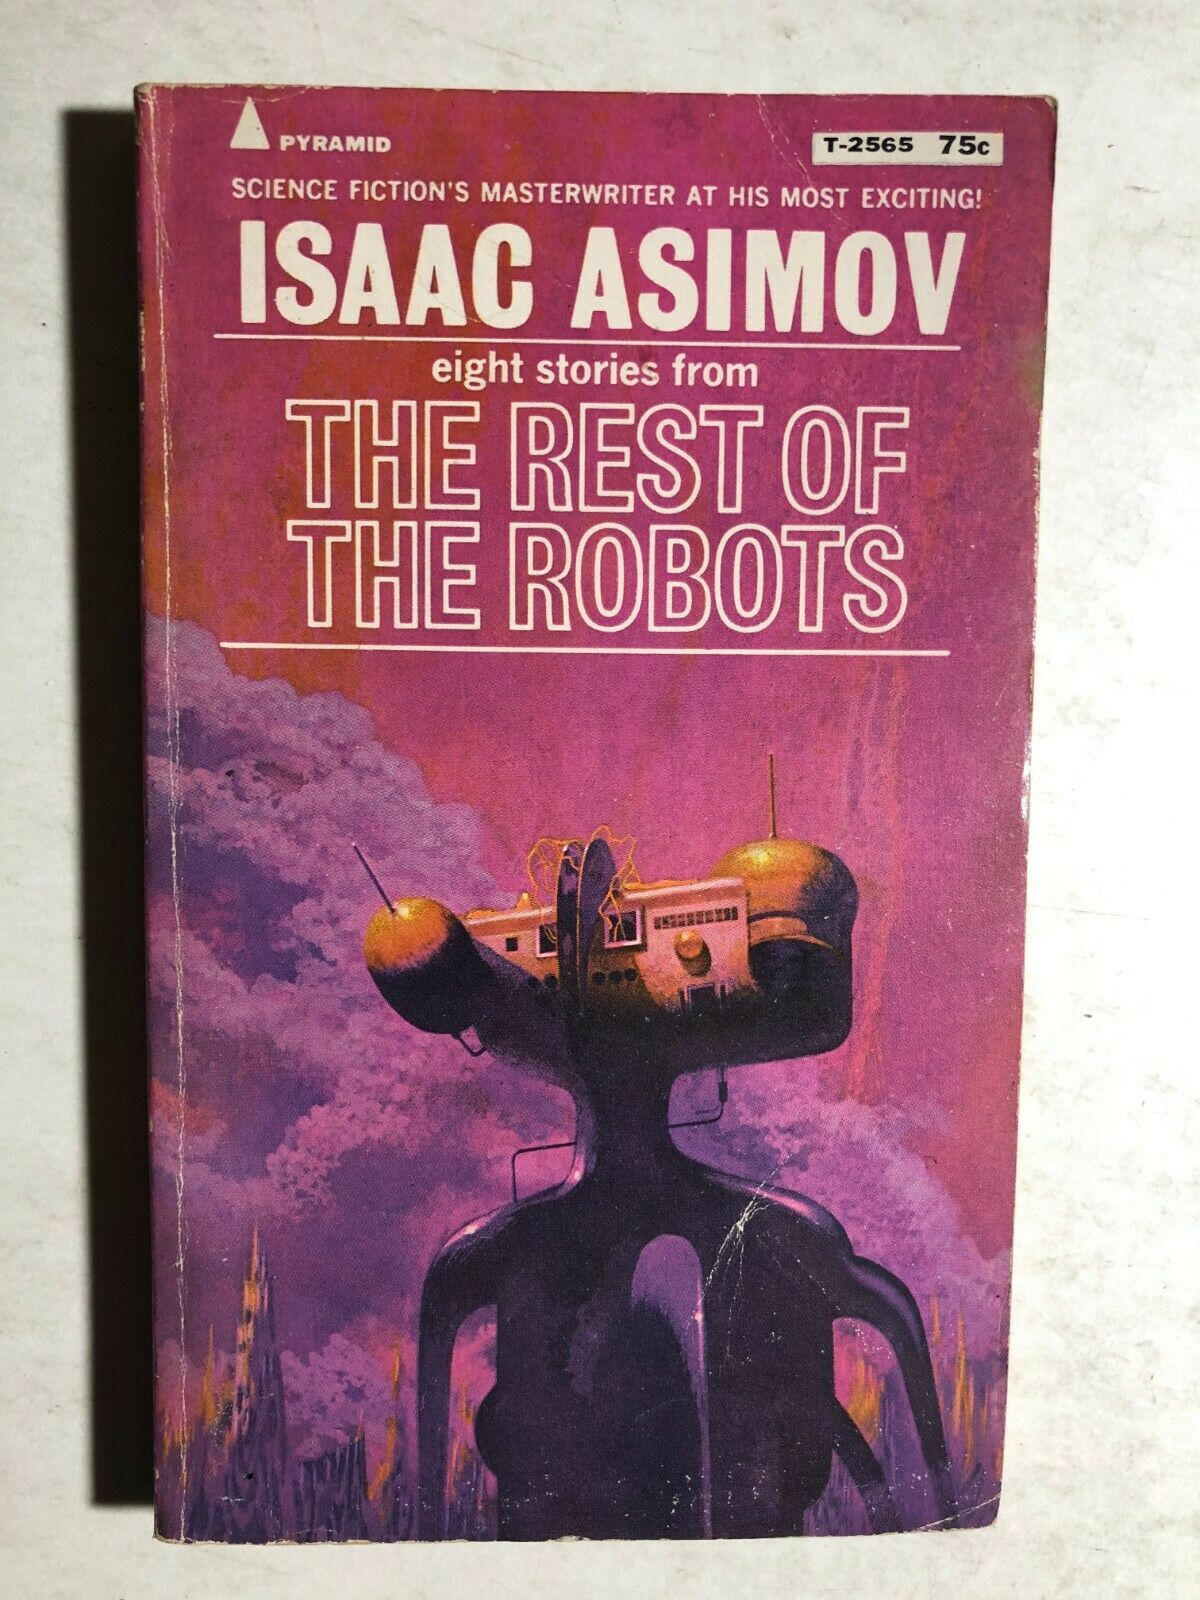 Primary image for THE REST OF THE ROBOTS eight stories by Isaac Asimov (1971) Pyramid SF pb